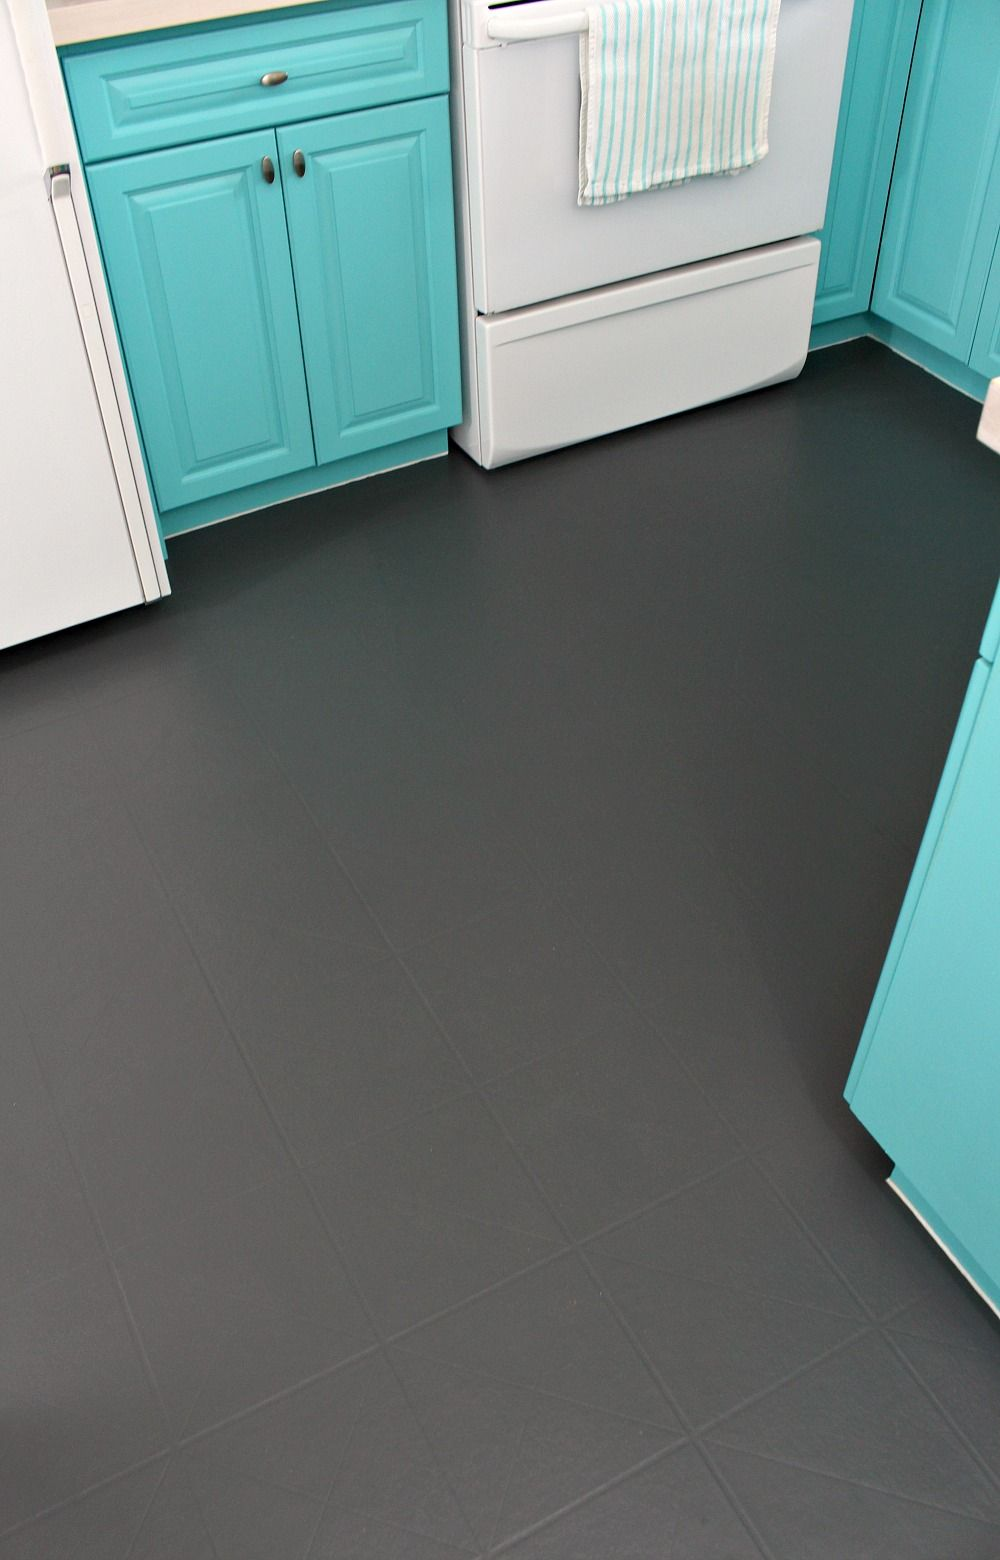 How to paint a vinyl floor painted kitchen floors kitchen floors how to paint a vinyl floor diy painted floors solutioingenieria Choice Image